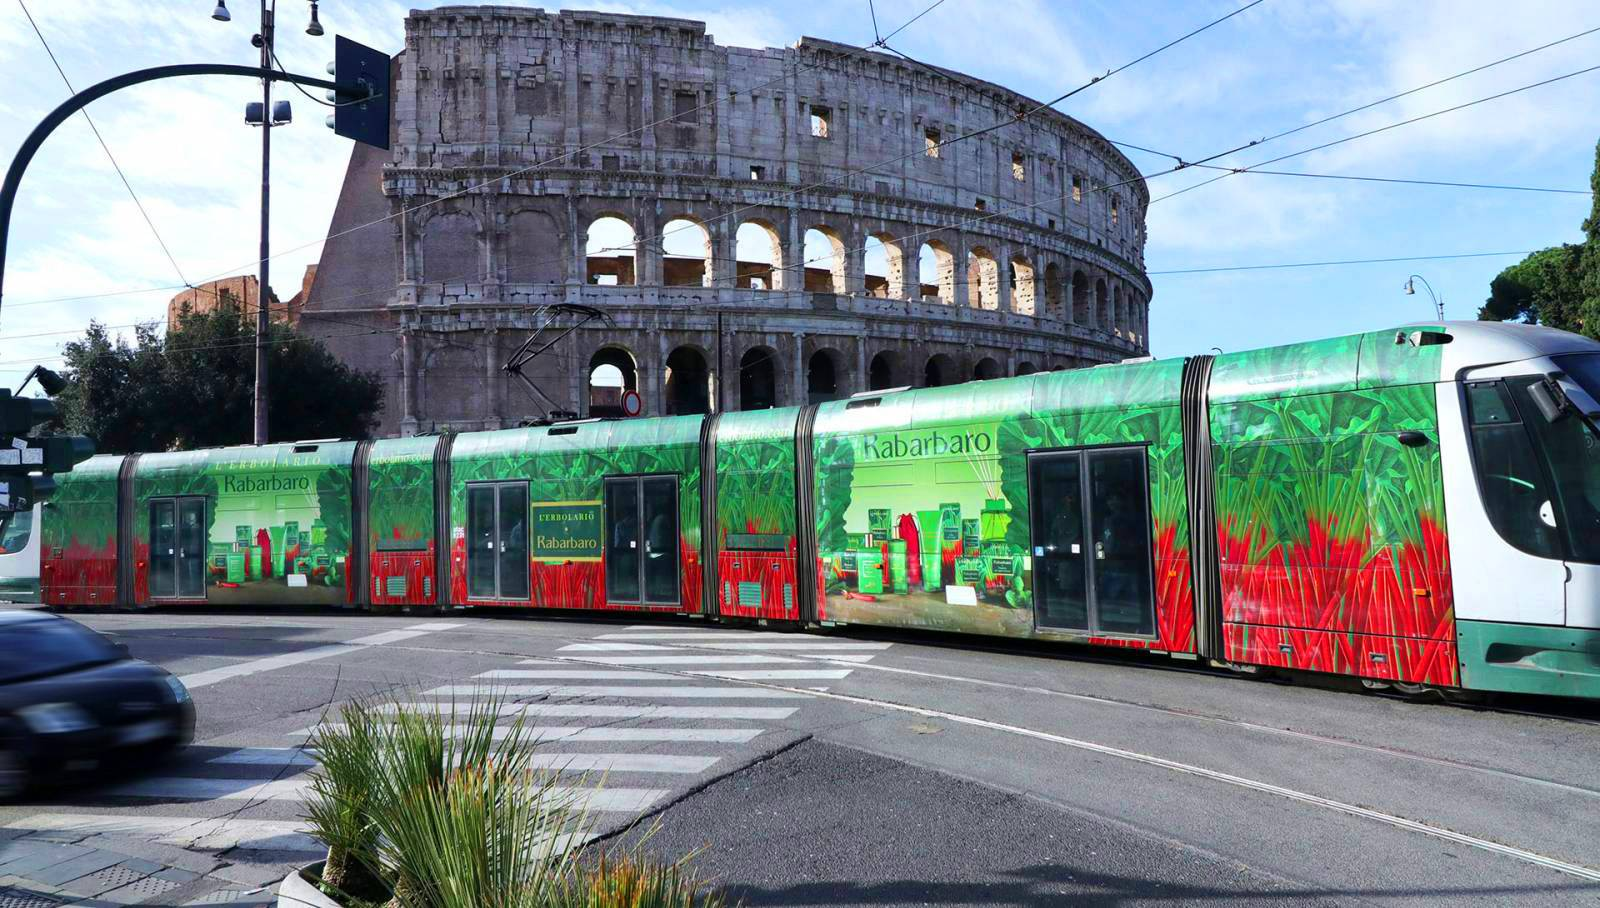 OOH IGPDecaux advertising in Rome Wrapped Vehicles for L'Erbolario